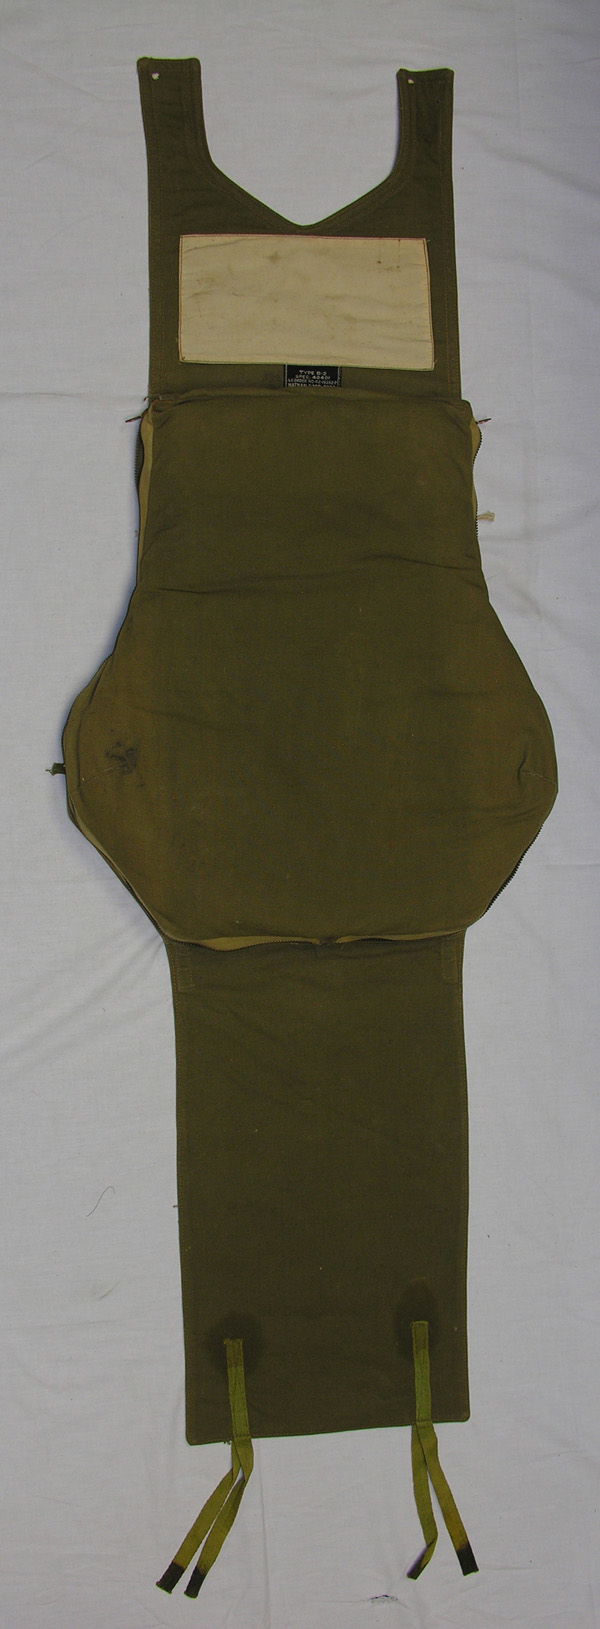 USAAF B-2 Survival Back Pad Kit